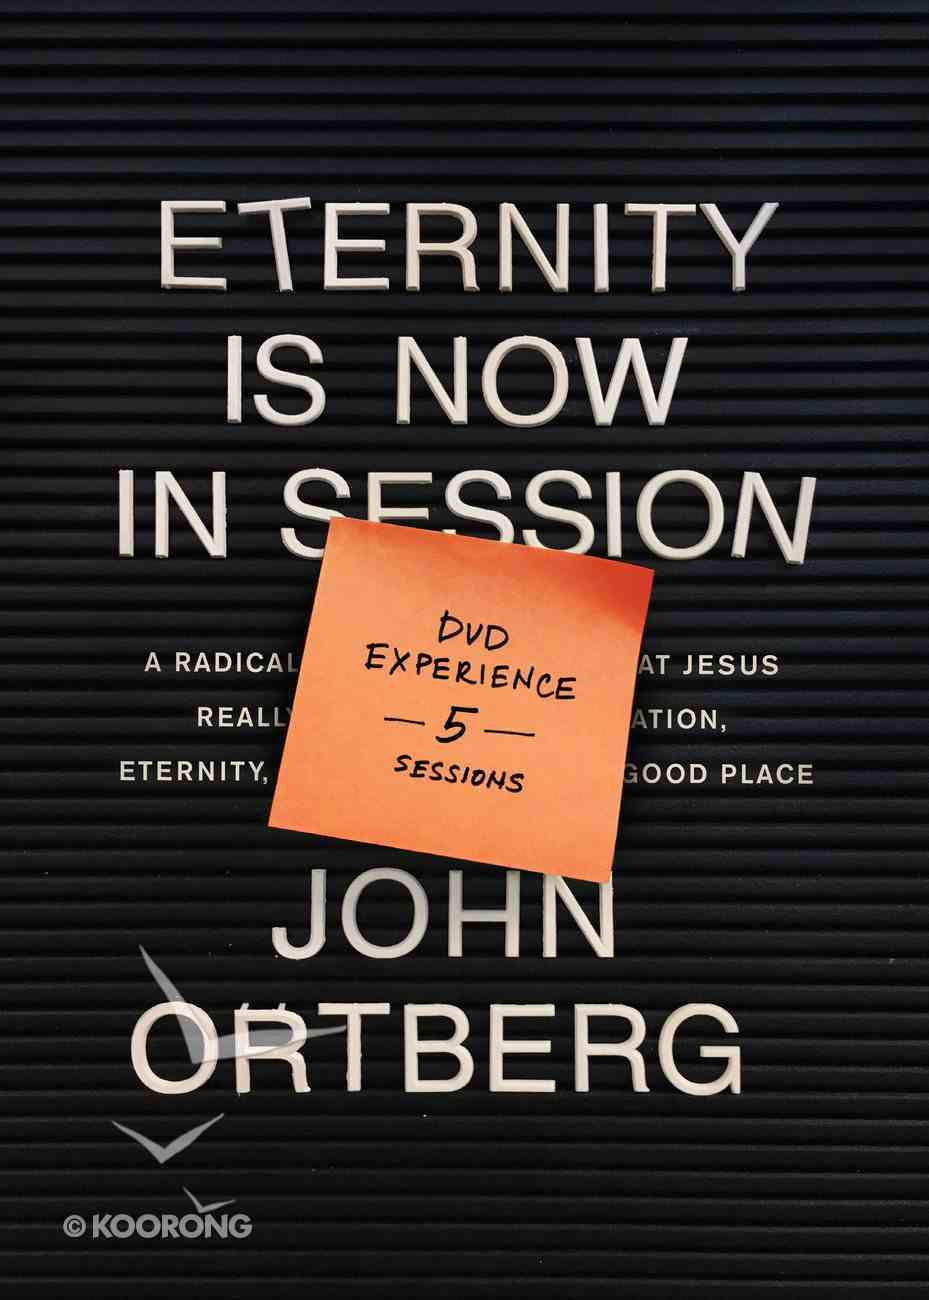 Eternity is Now in Session: A Radical Rediscovery of What Jesus Really Taught About Salvation, Eternity, and Getting to the Good Place (Dvd Experience) DVD